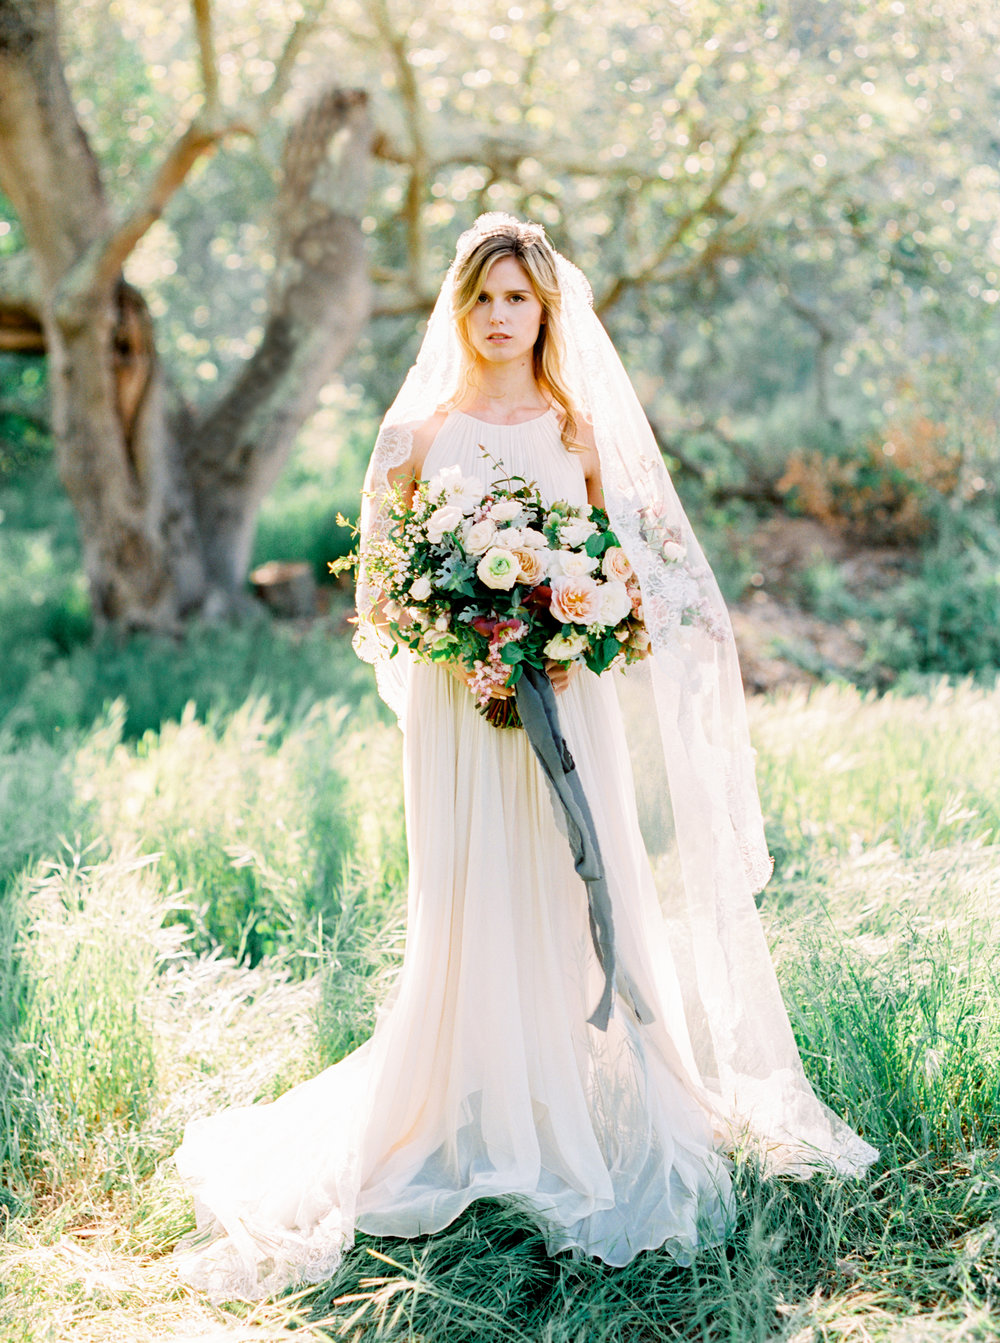 malibu_wedding_bride-002.jpg